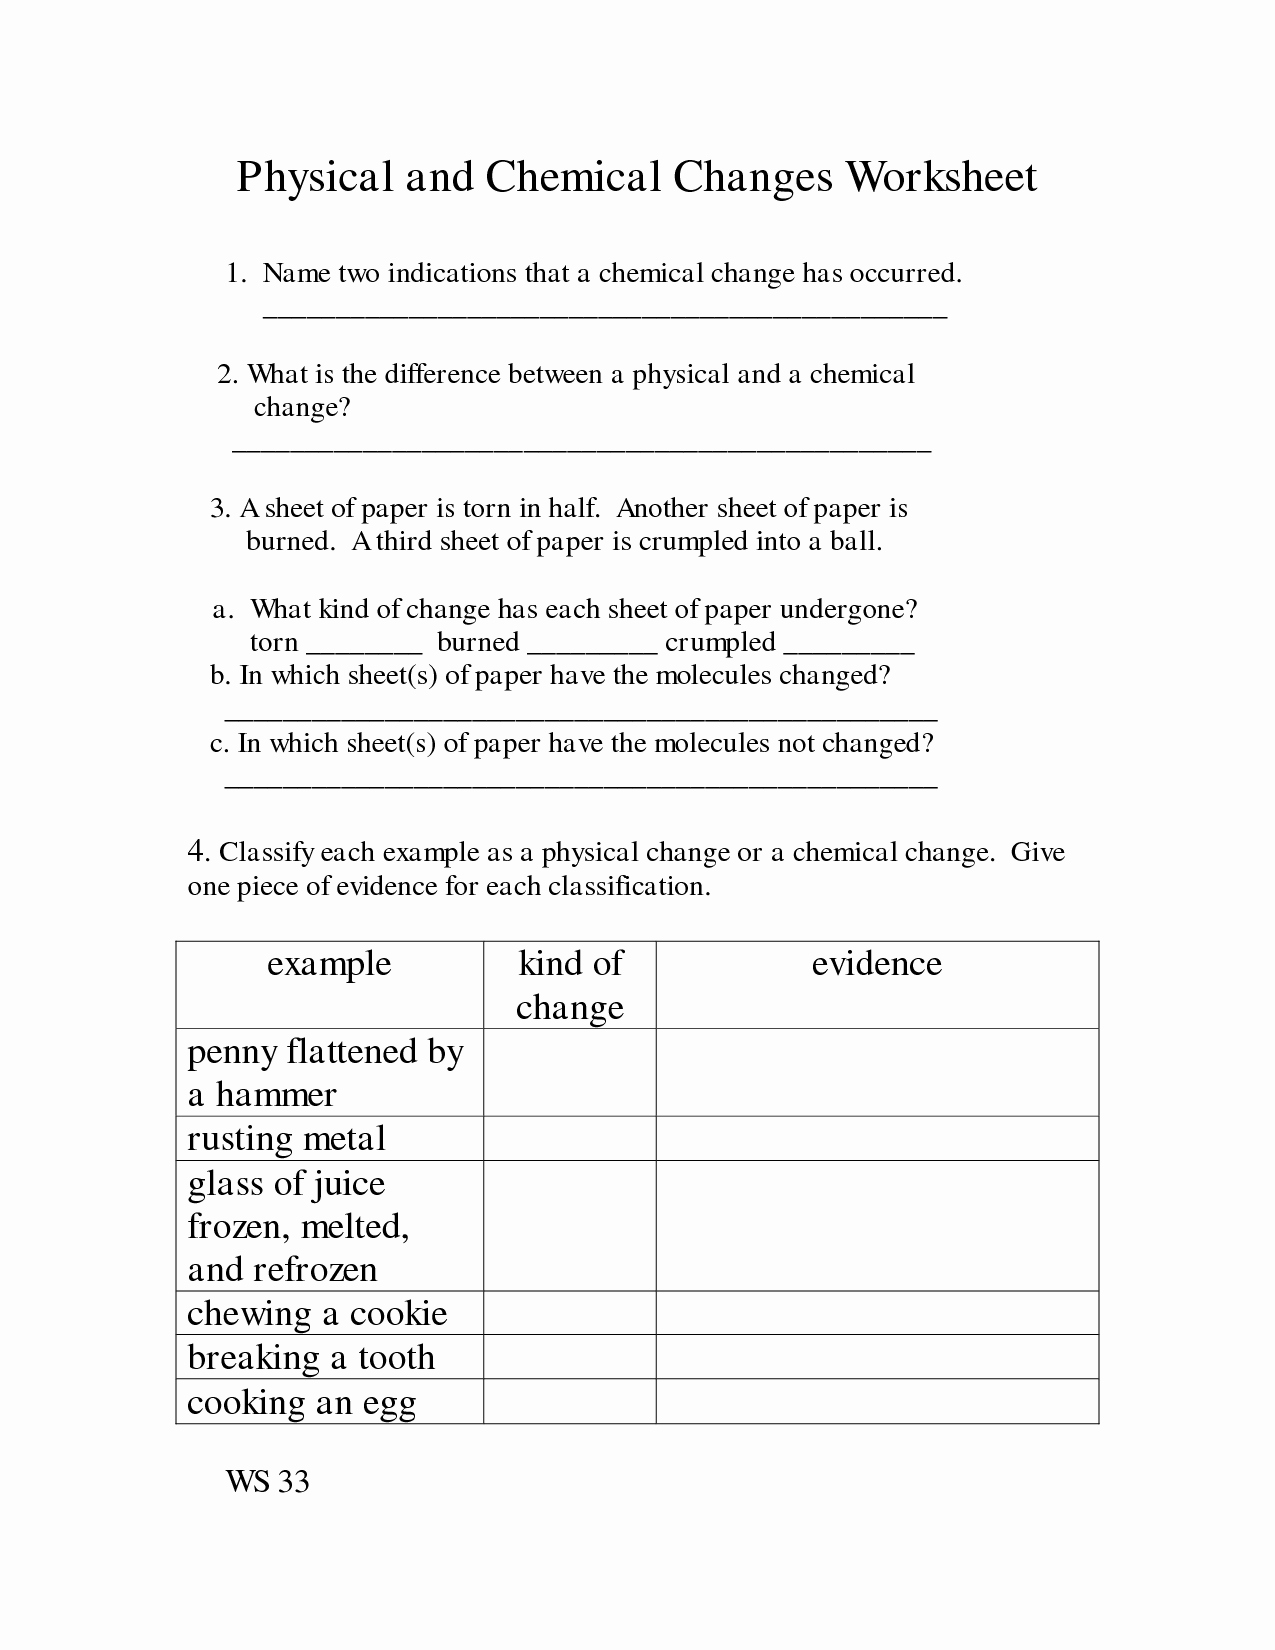 Physical and Chemical Properties Worksheet Luxury 14 Best Of Elementary Chemical Change Worksheets